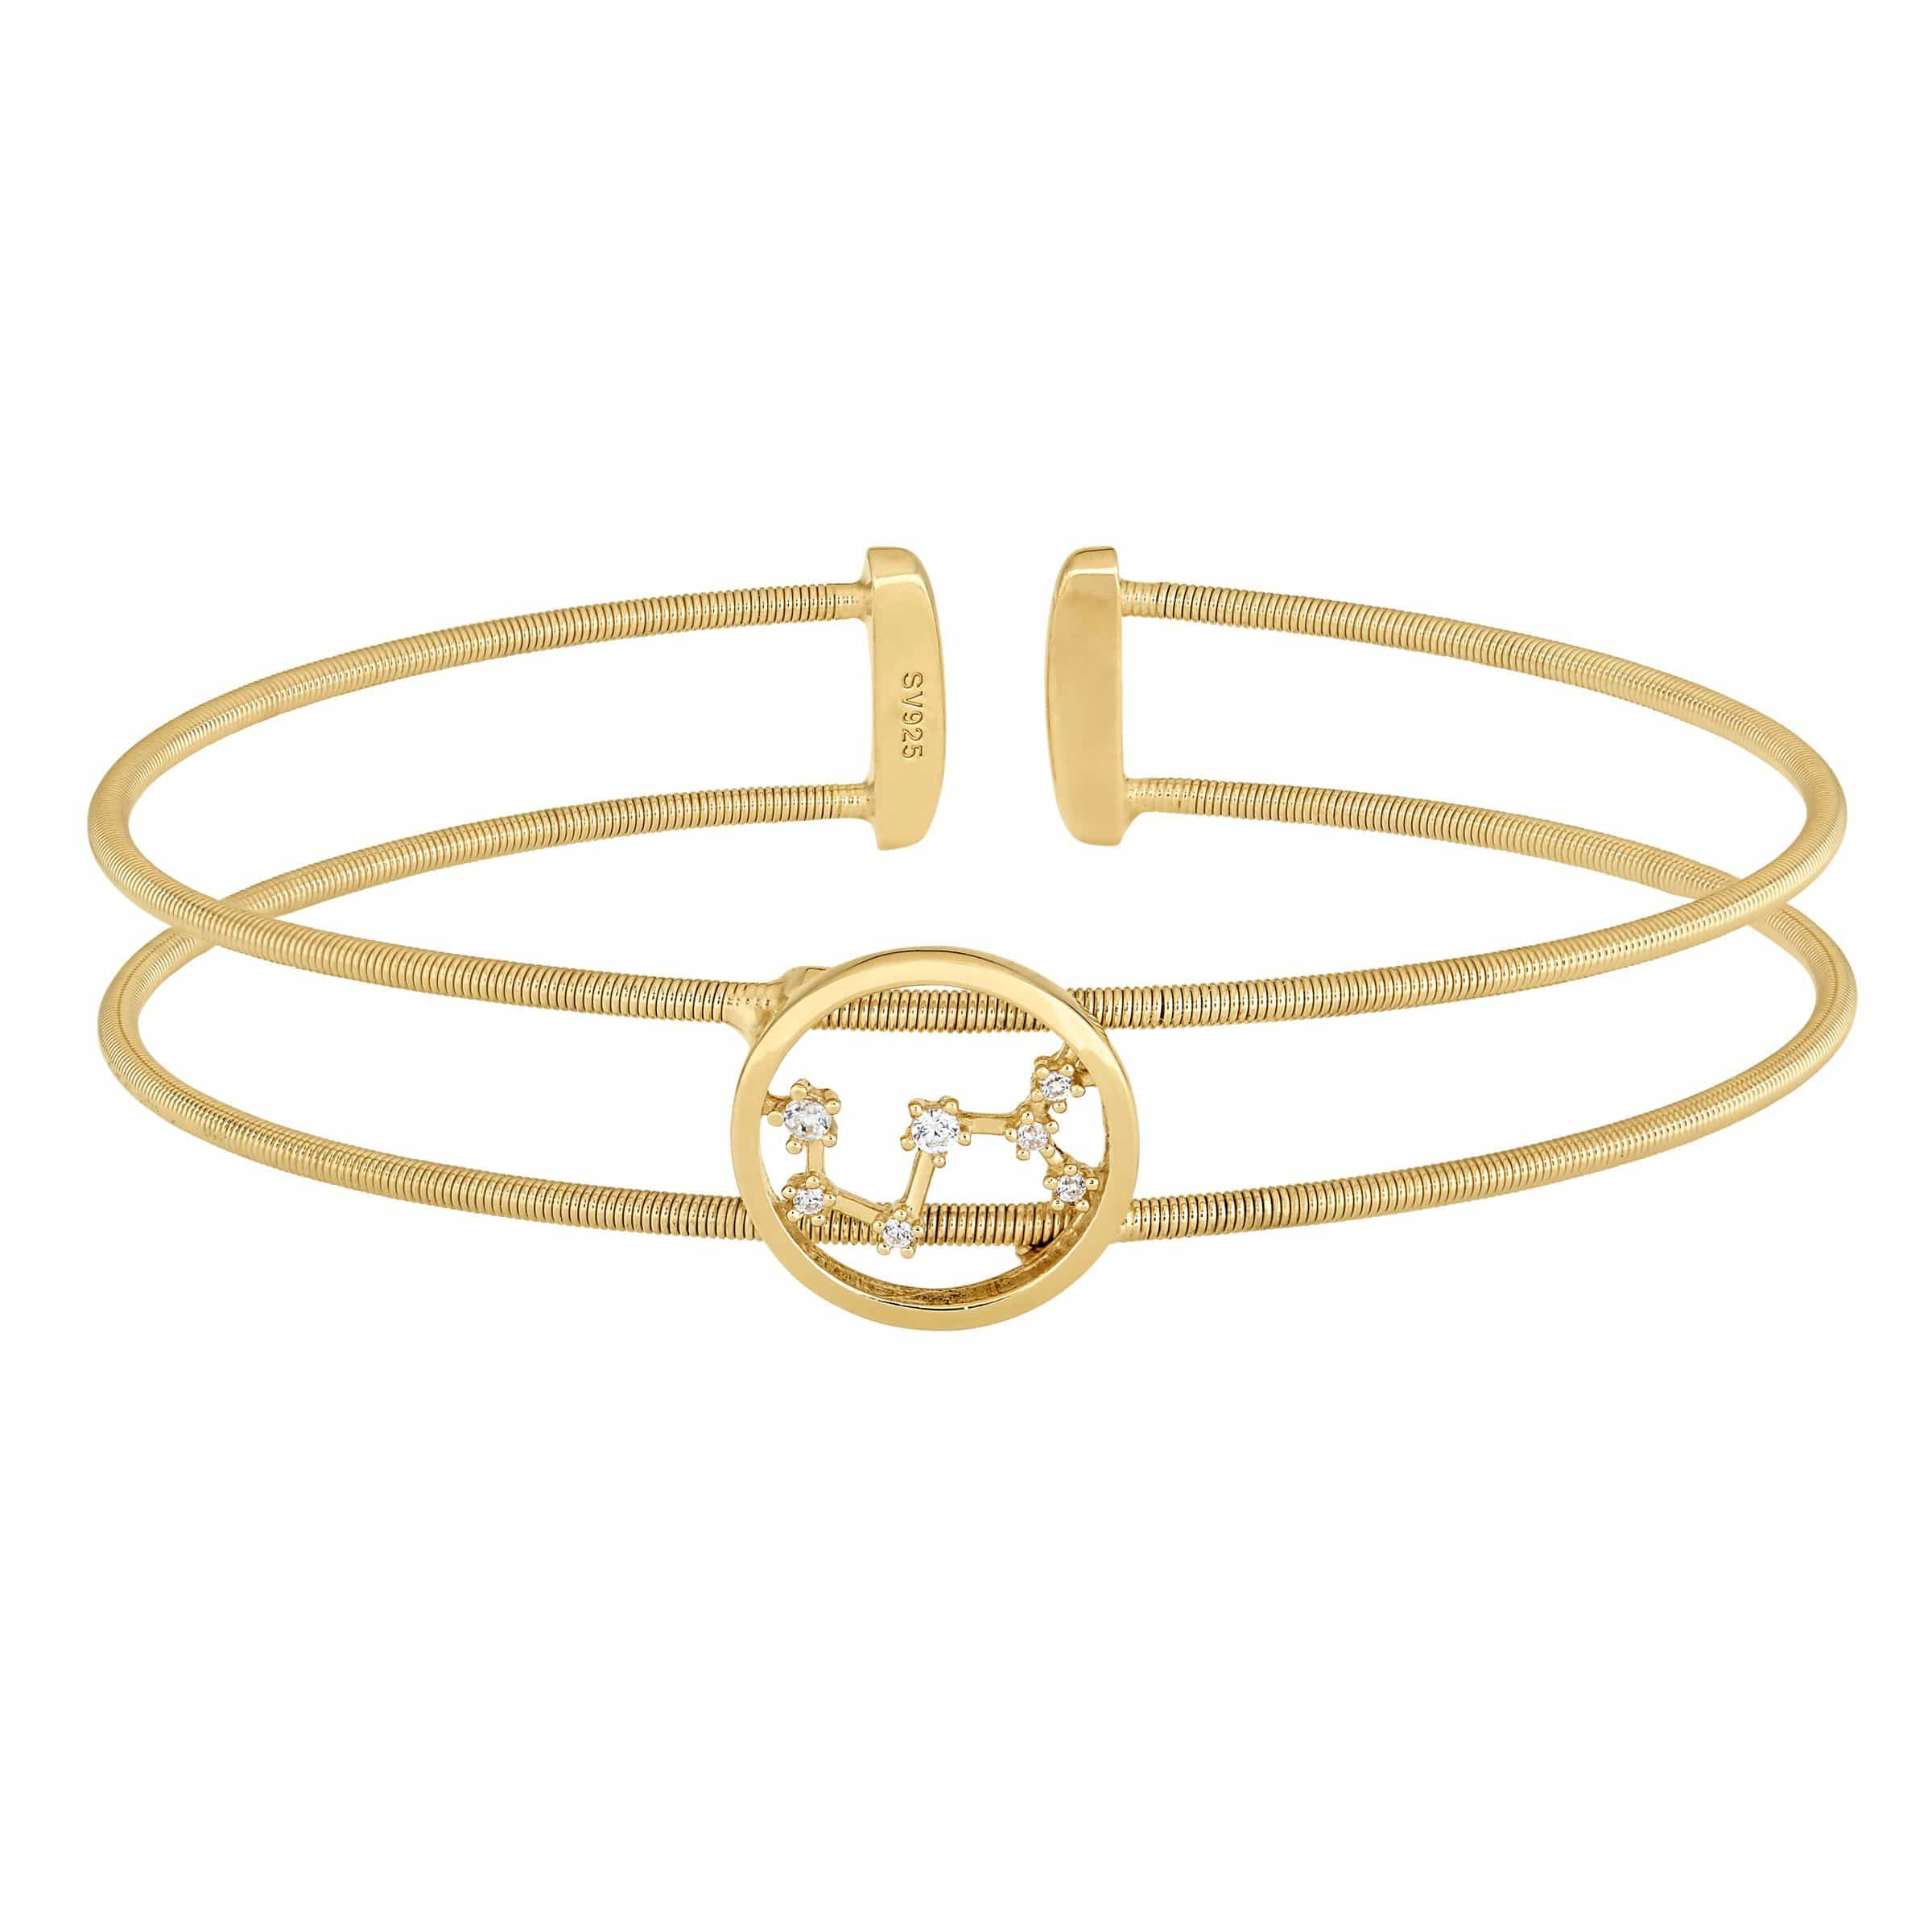 Gold Finish Sterling Silver Cable Cuff Constellation Scorpio Bracelet - LL7047B10-G-Kelly Waters-Renee Taylor Gallery